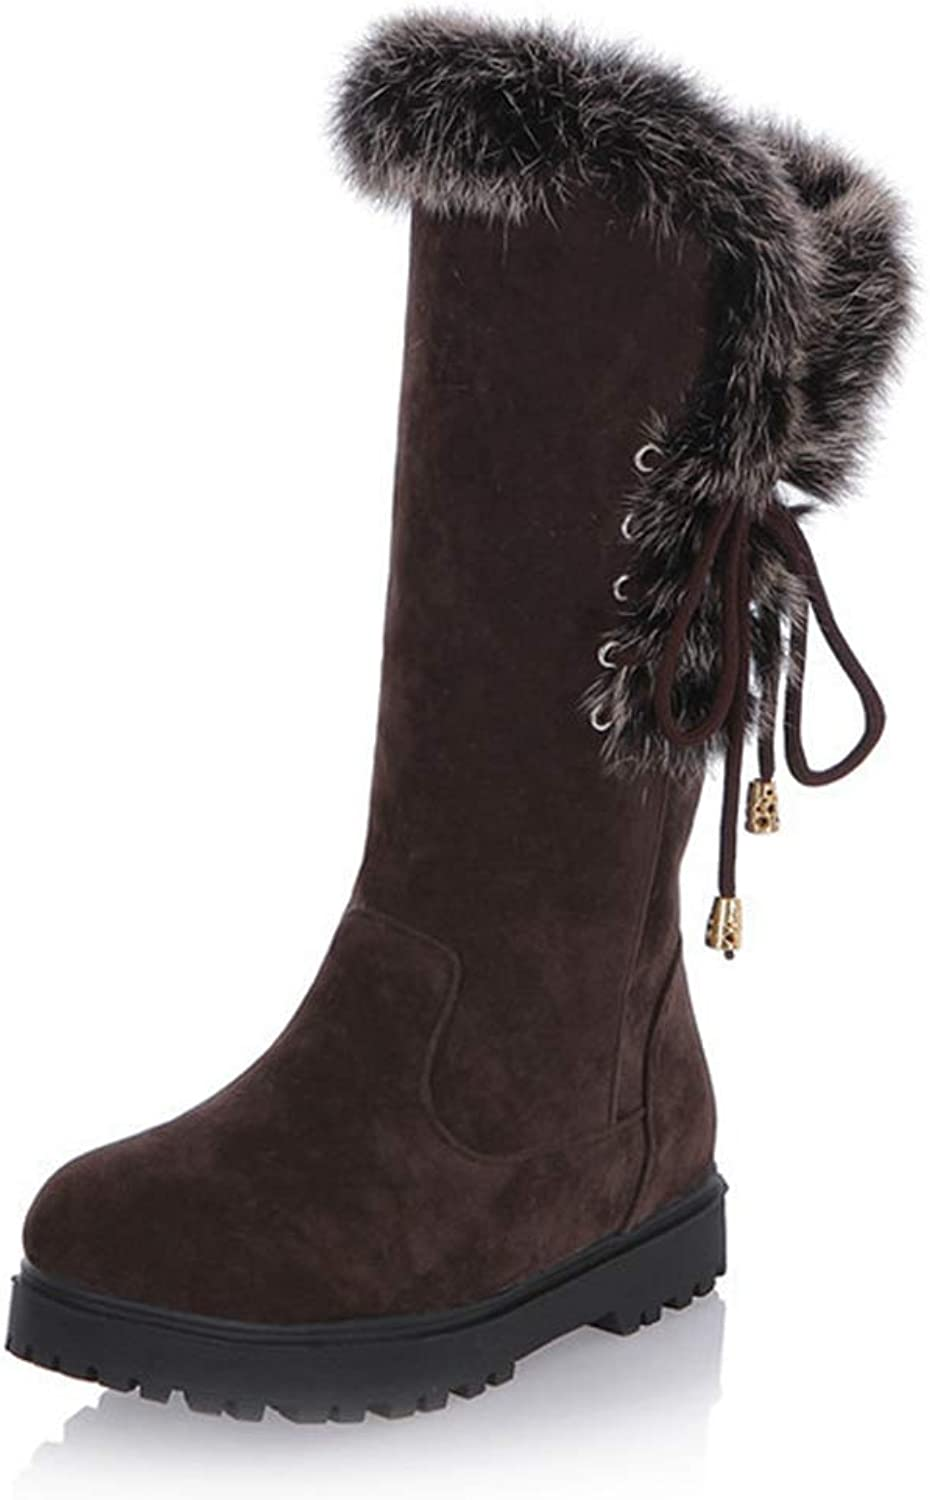 CYBLING Women's Winter Mid Calf Boots Round Toe Suede Low Heel Faux Fur Warm Ankle Snow Booties